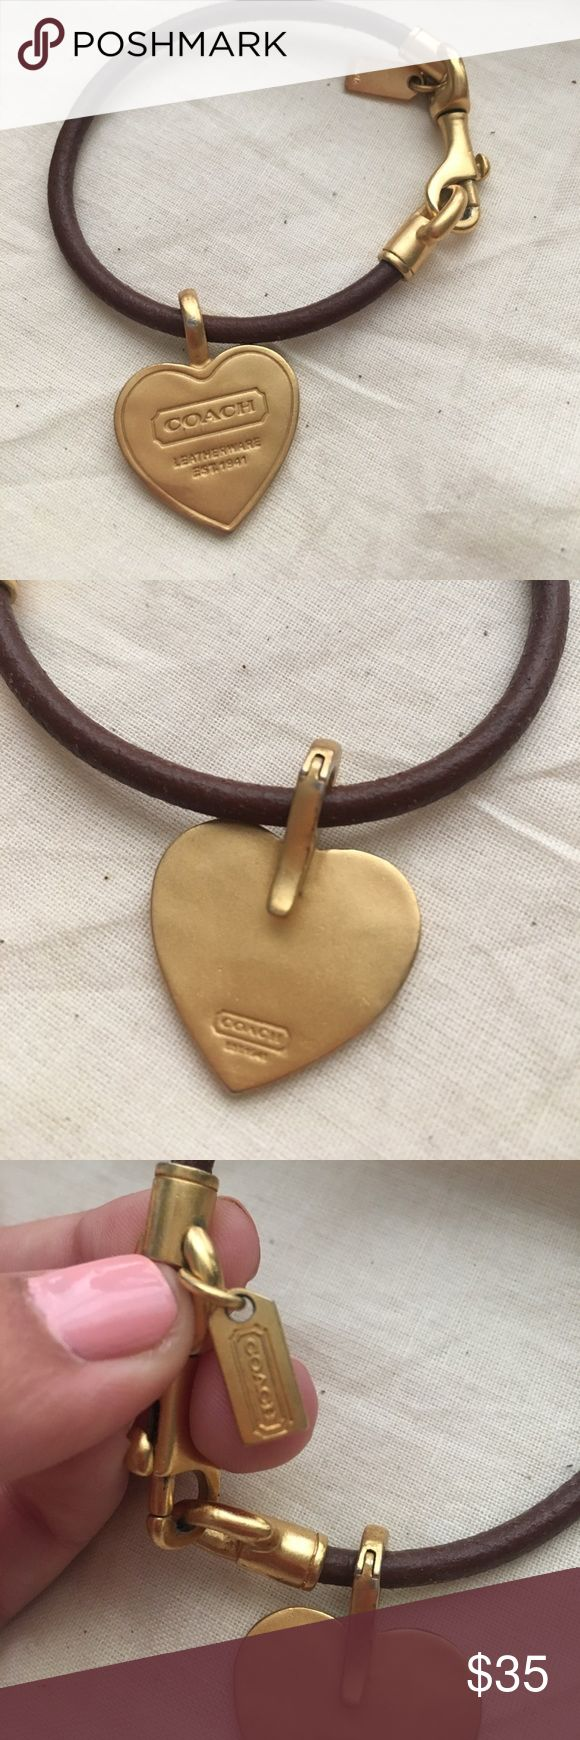 Brown Leather Coach Bracelet with Gold Heart Charm Timeless Coach Bracelet with removable heart charm. Authentic & Perfect condition! Perfect gift for any lady! Coach Jewelry Bracelets